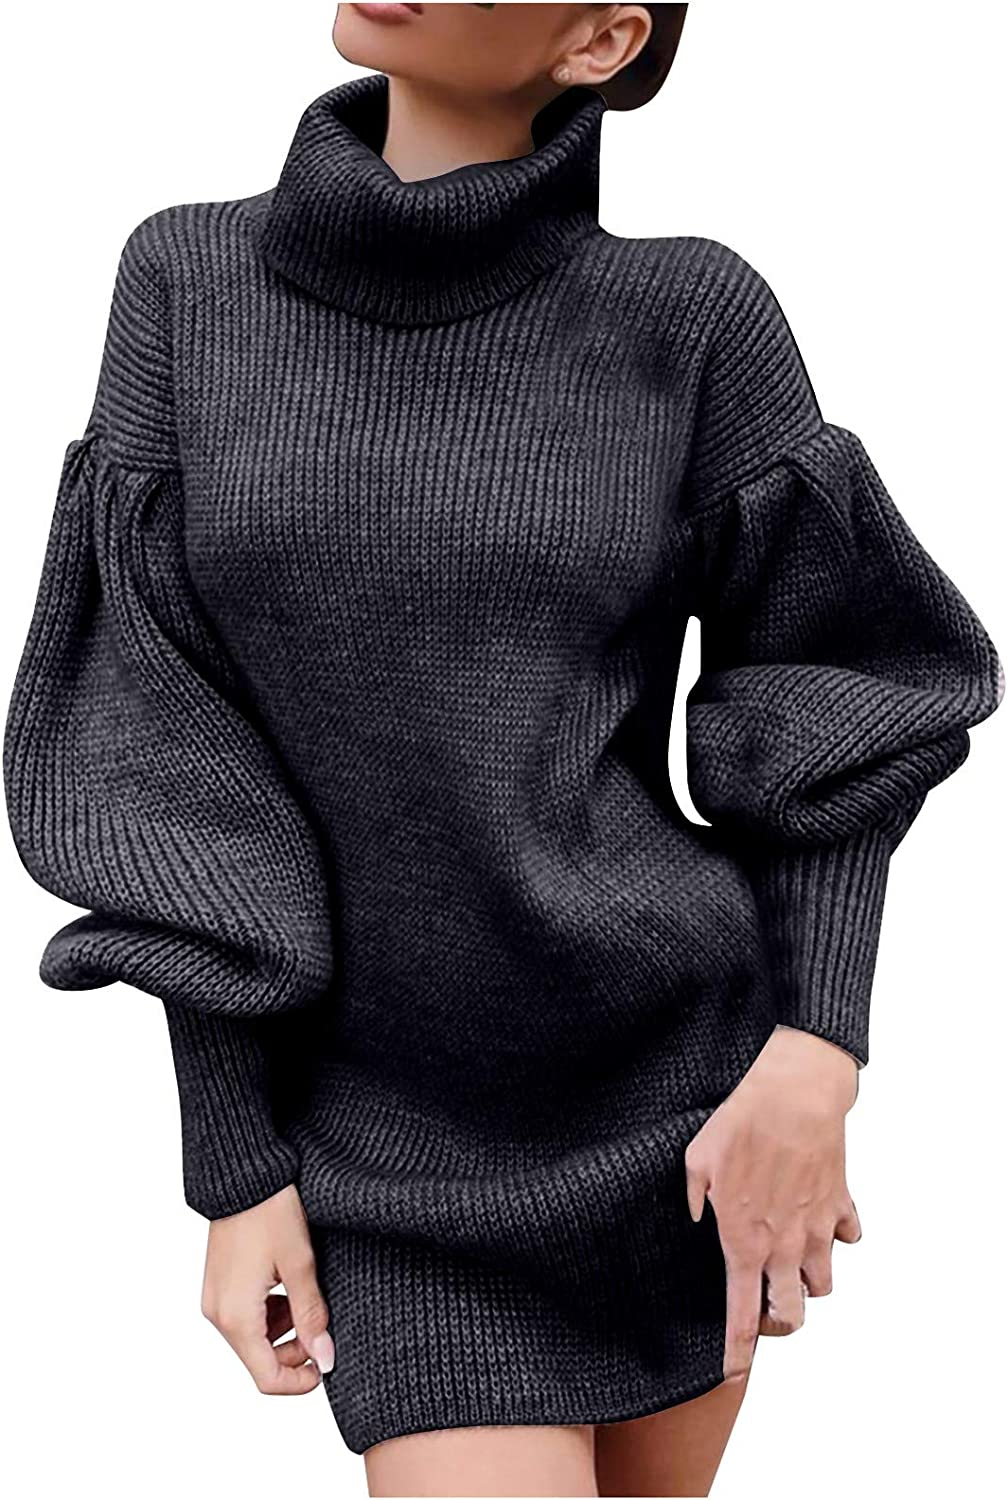 VEKDONE Women Loose Oversized Cable Knit Turtleneck Sweater Dress Winter Warm Baggy Long Pullover Bodycon Sweaters